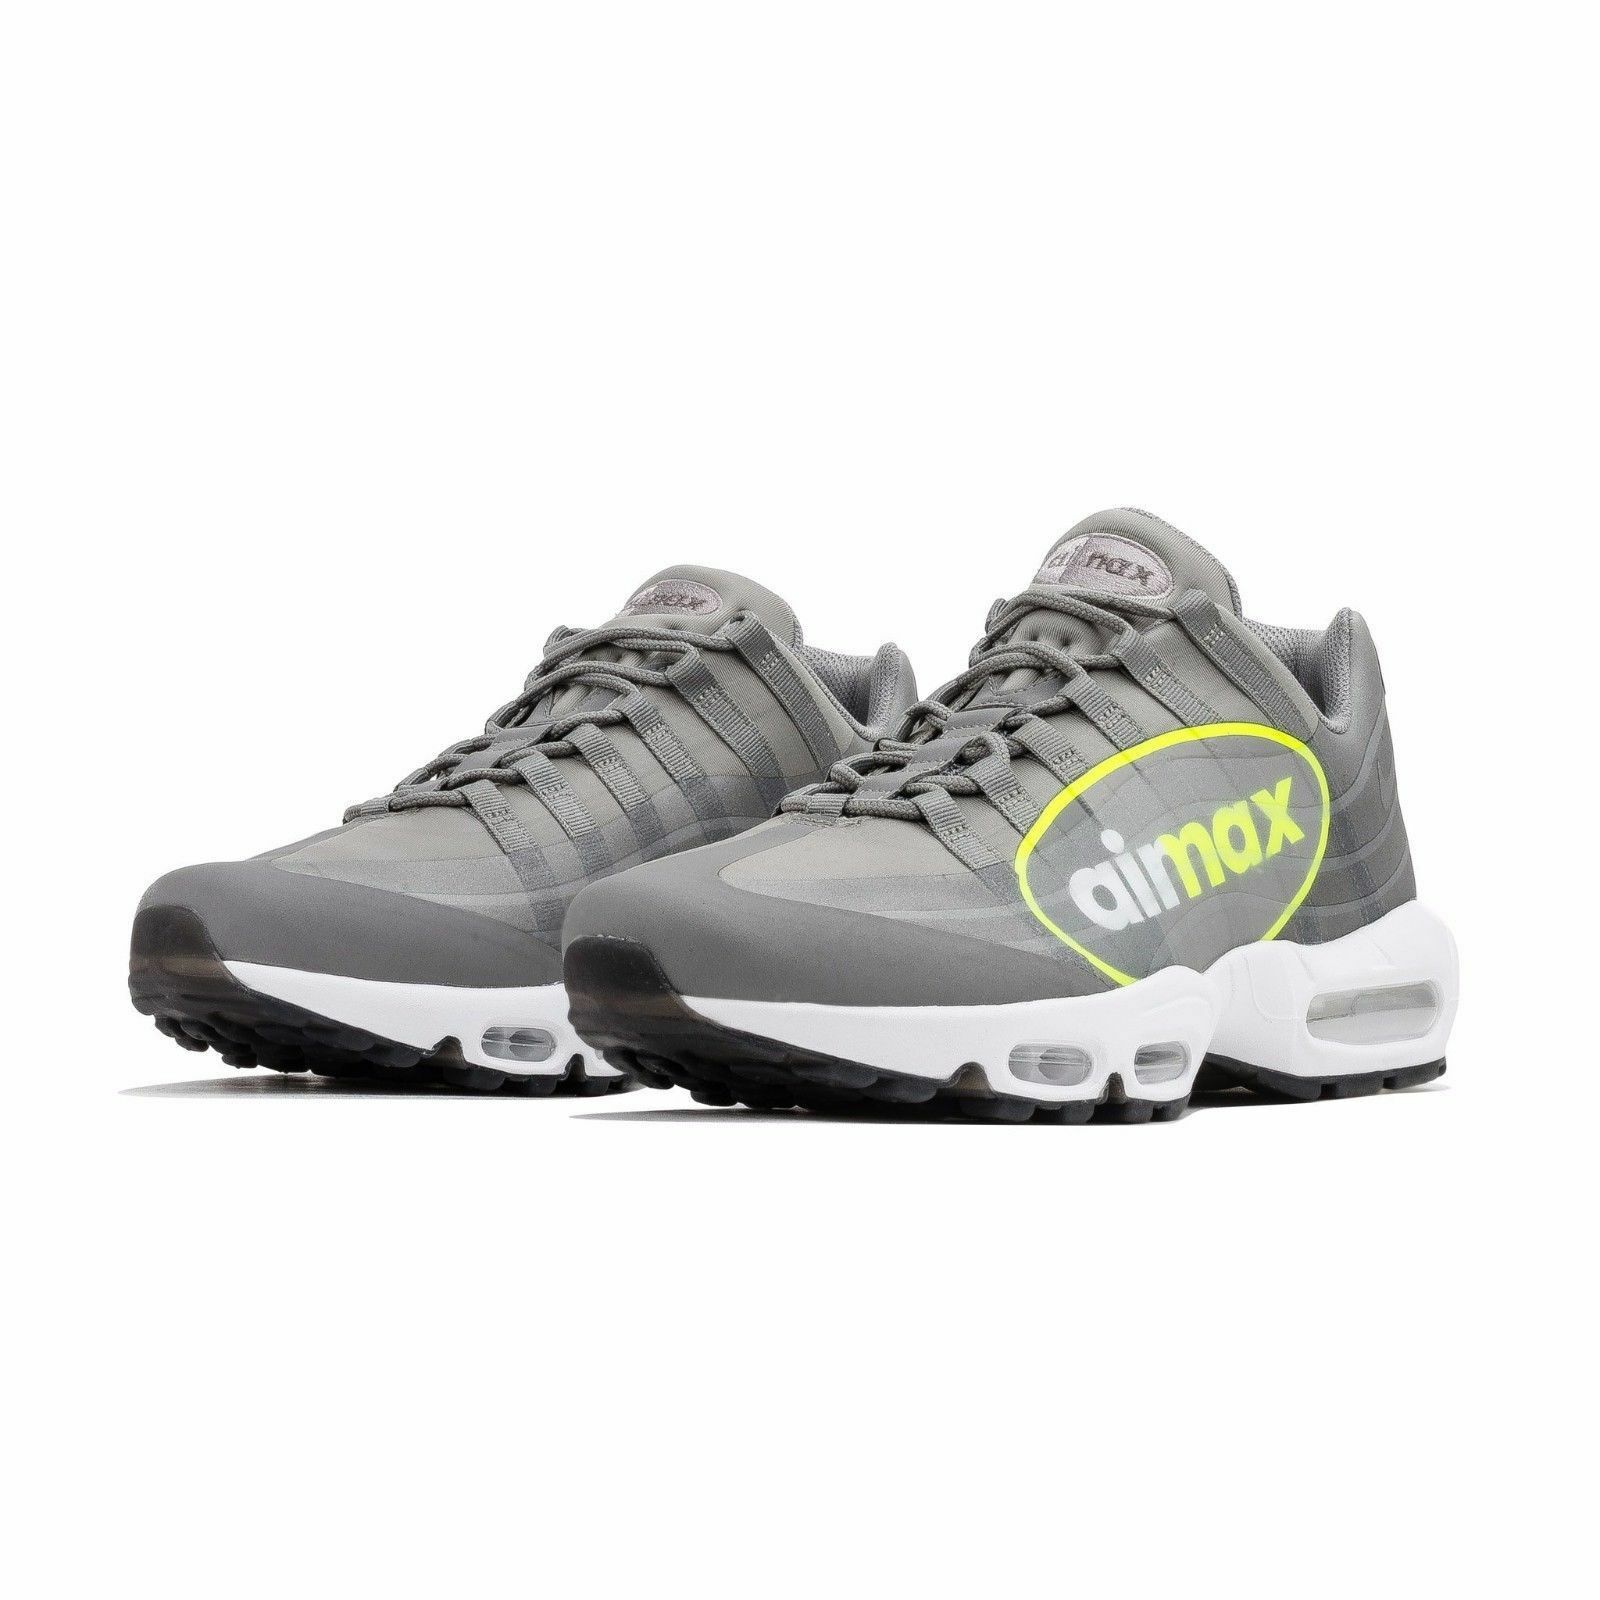 NIKE AIR MAX 95 NS GPX MEN'S SHOES SIZE: 14 DUSTY VAULT DARK PEWTER AJ7183 001